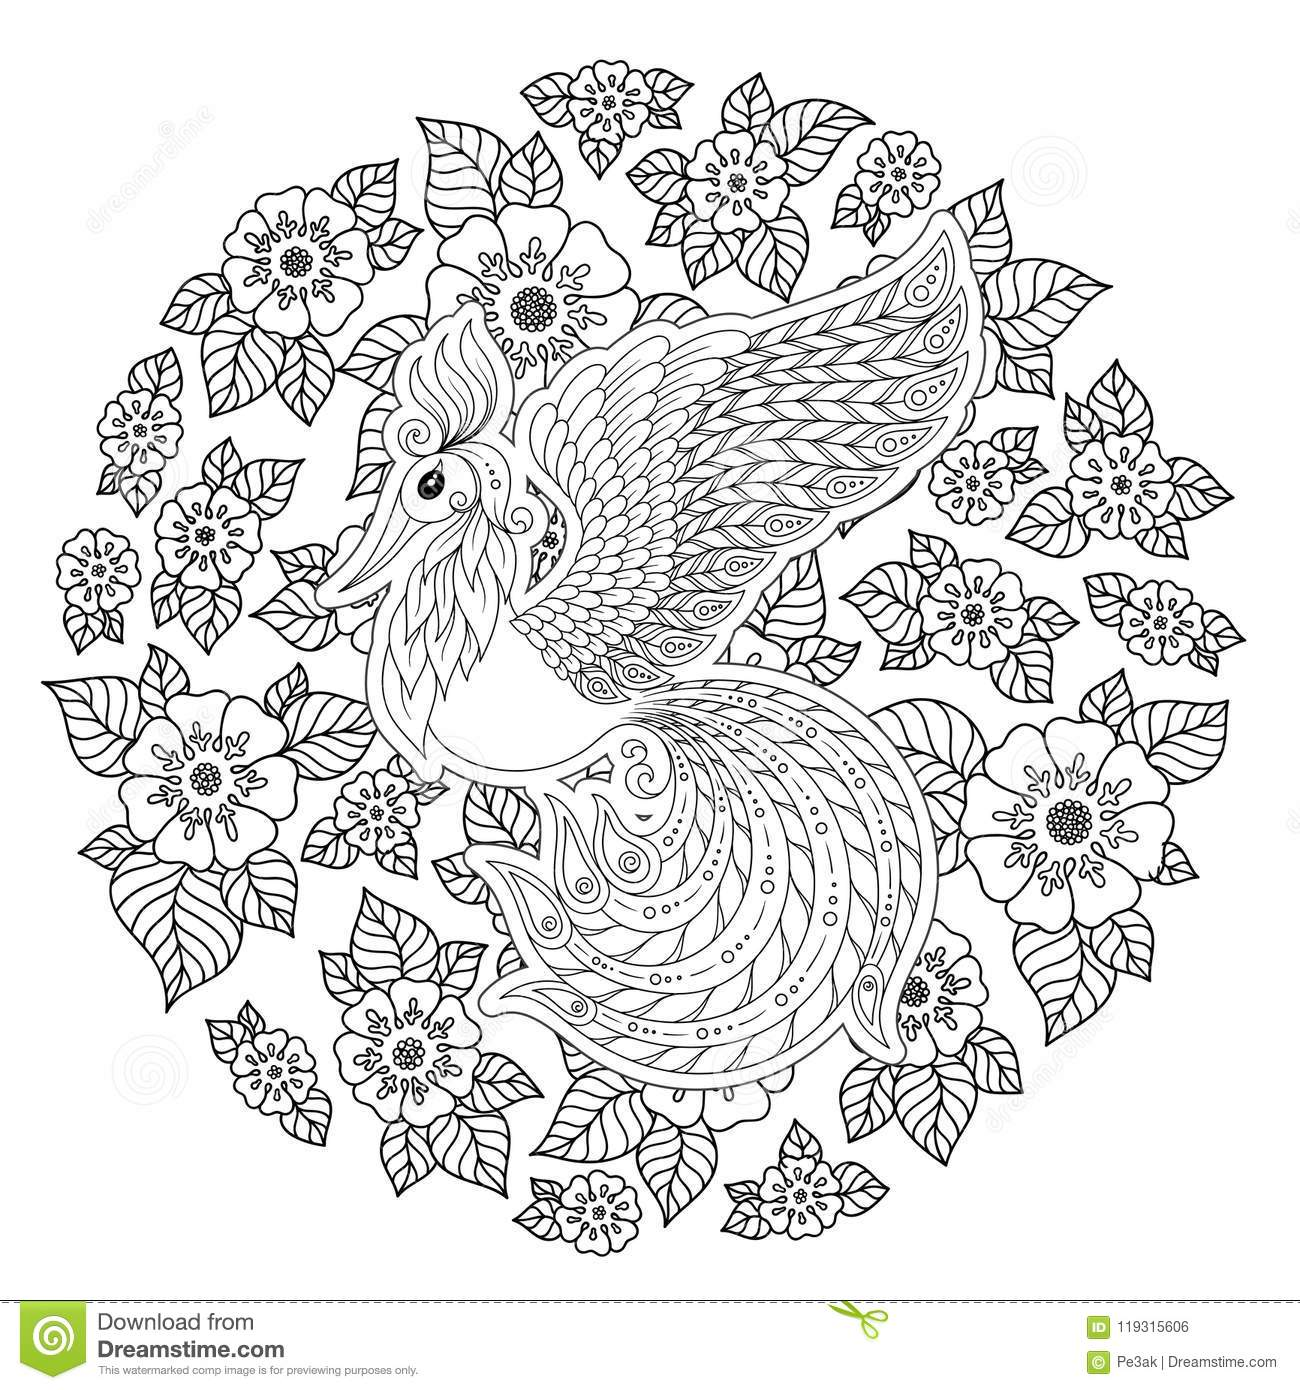 Exotic Garden Coloring Page || COLORING-PAGES-PRINTABLE.COM | 1390x1300